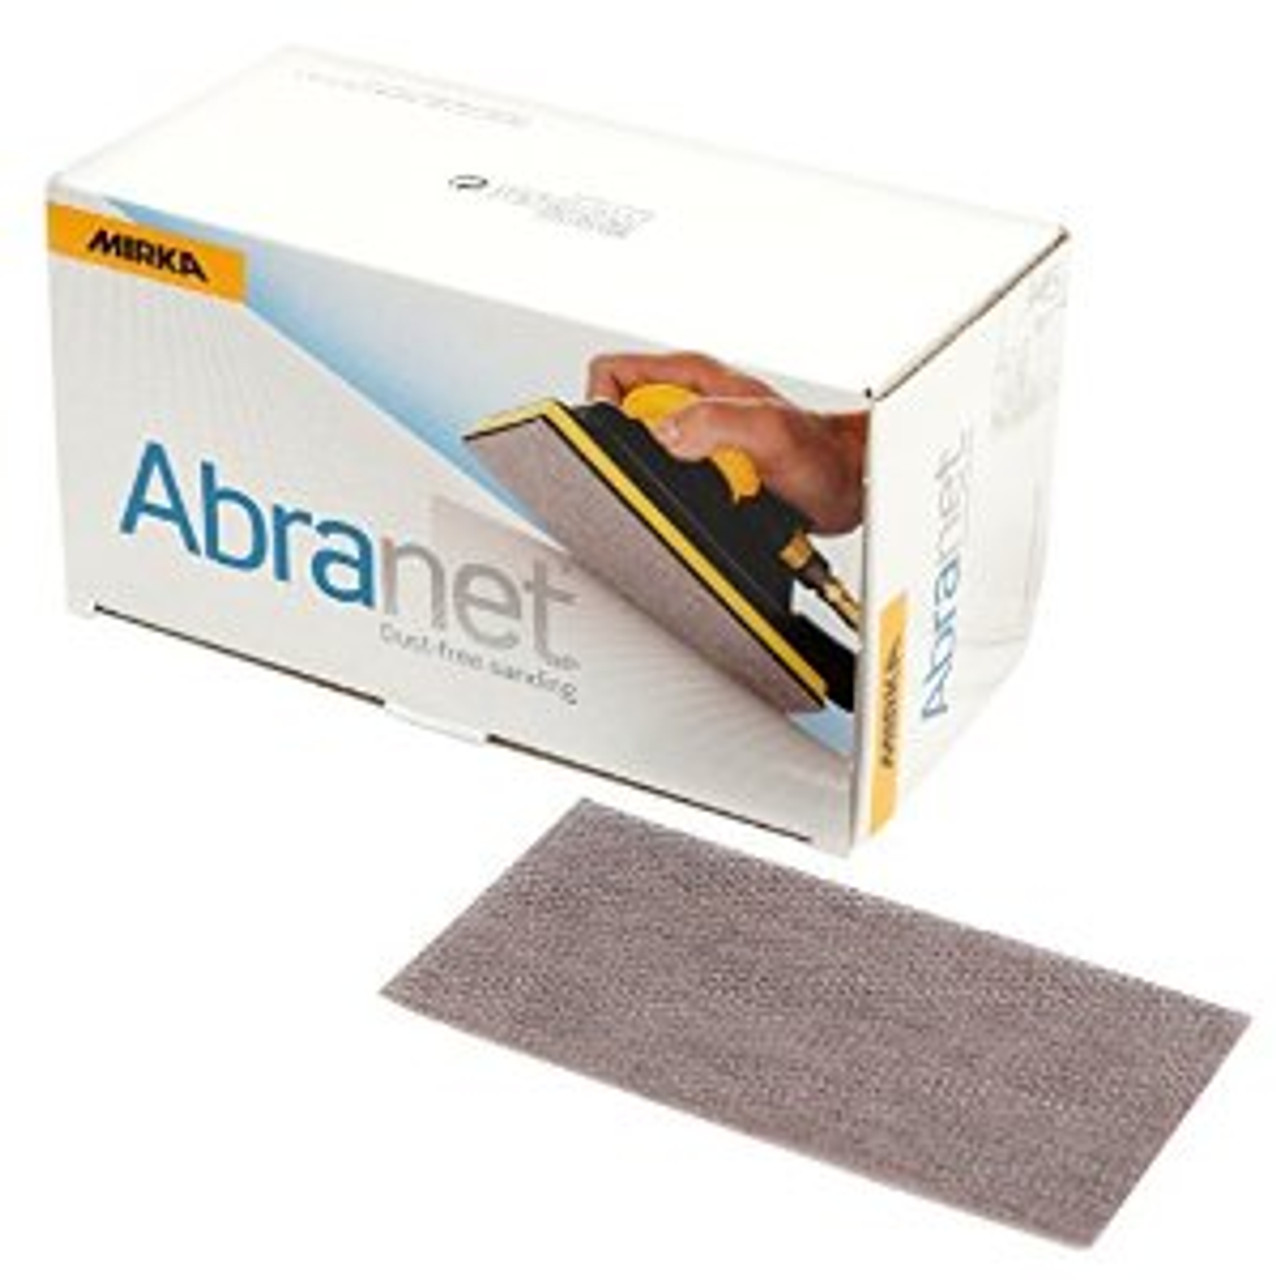 "Mirka 9A-149-APRP- Abranet 2-3/4"" x 5"" Mesh Grip Assortment (9 Sheets/Pkg)"